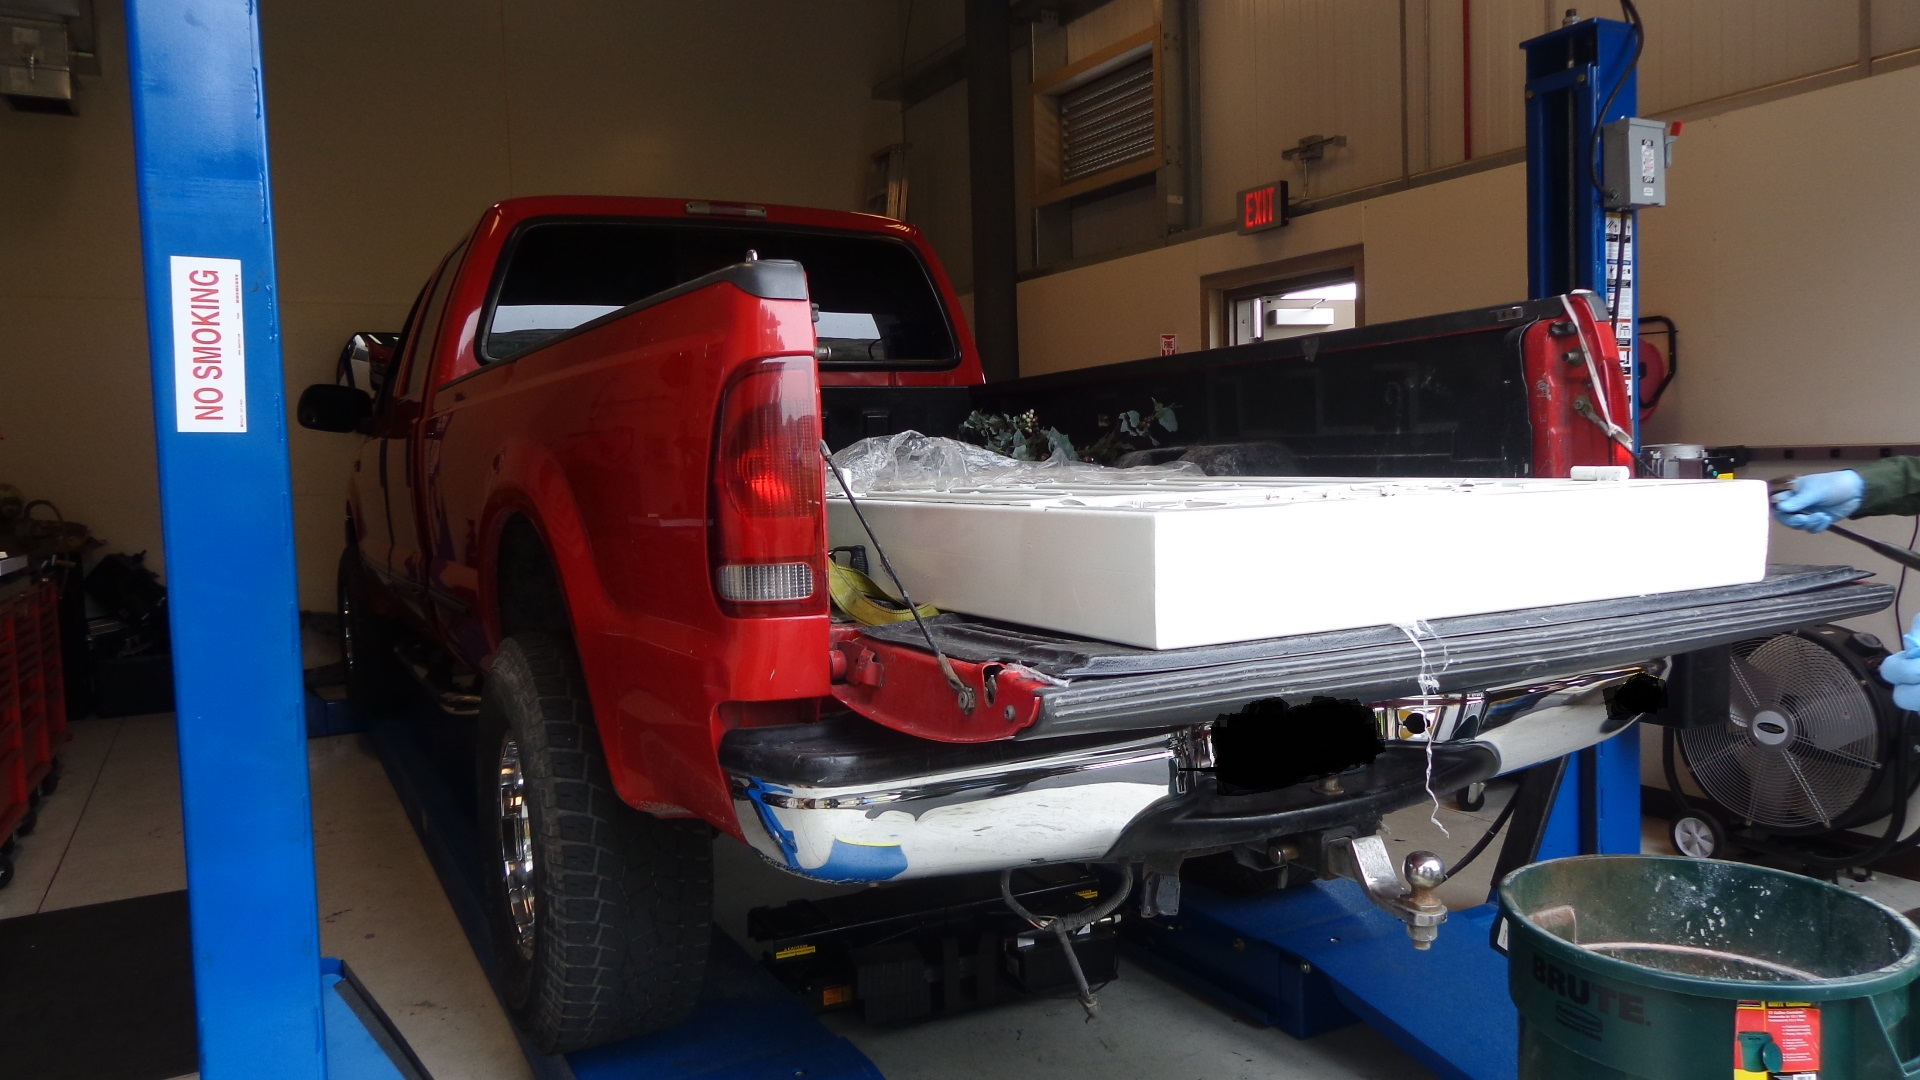 Border Patrol Finds 1 4 Million Drugs Hidden Metal Door additionally 128500 Cacamba Carroceria Original F75 furthermore New Black Blue 504595 as well Results likewise Index. on 04 ford pickup